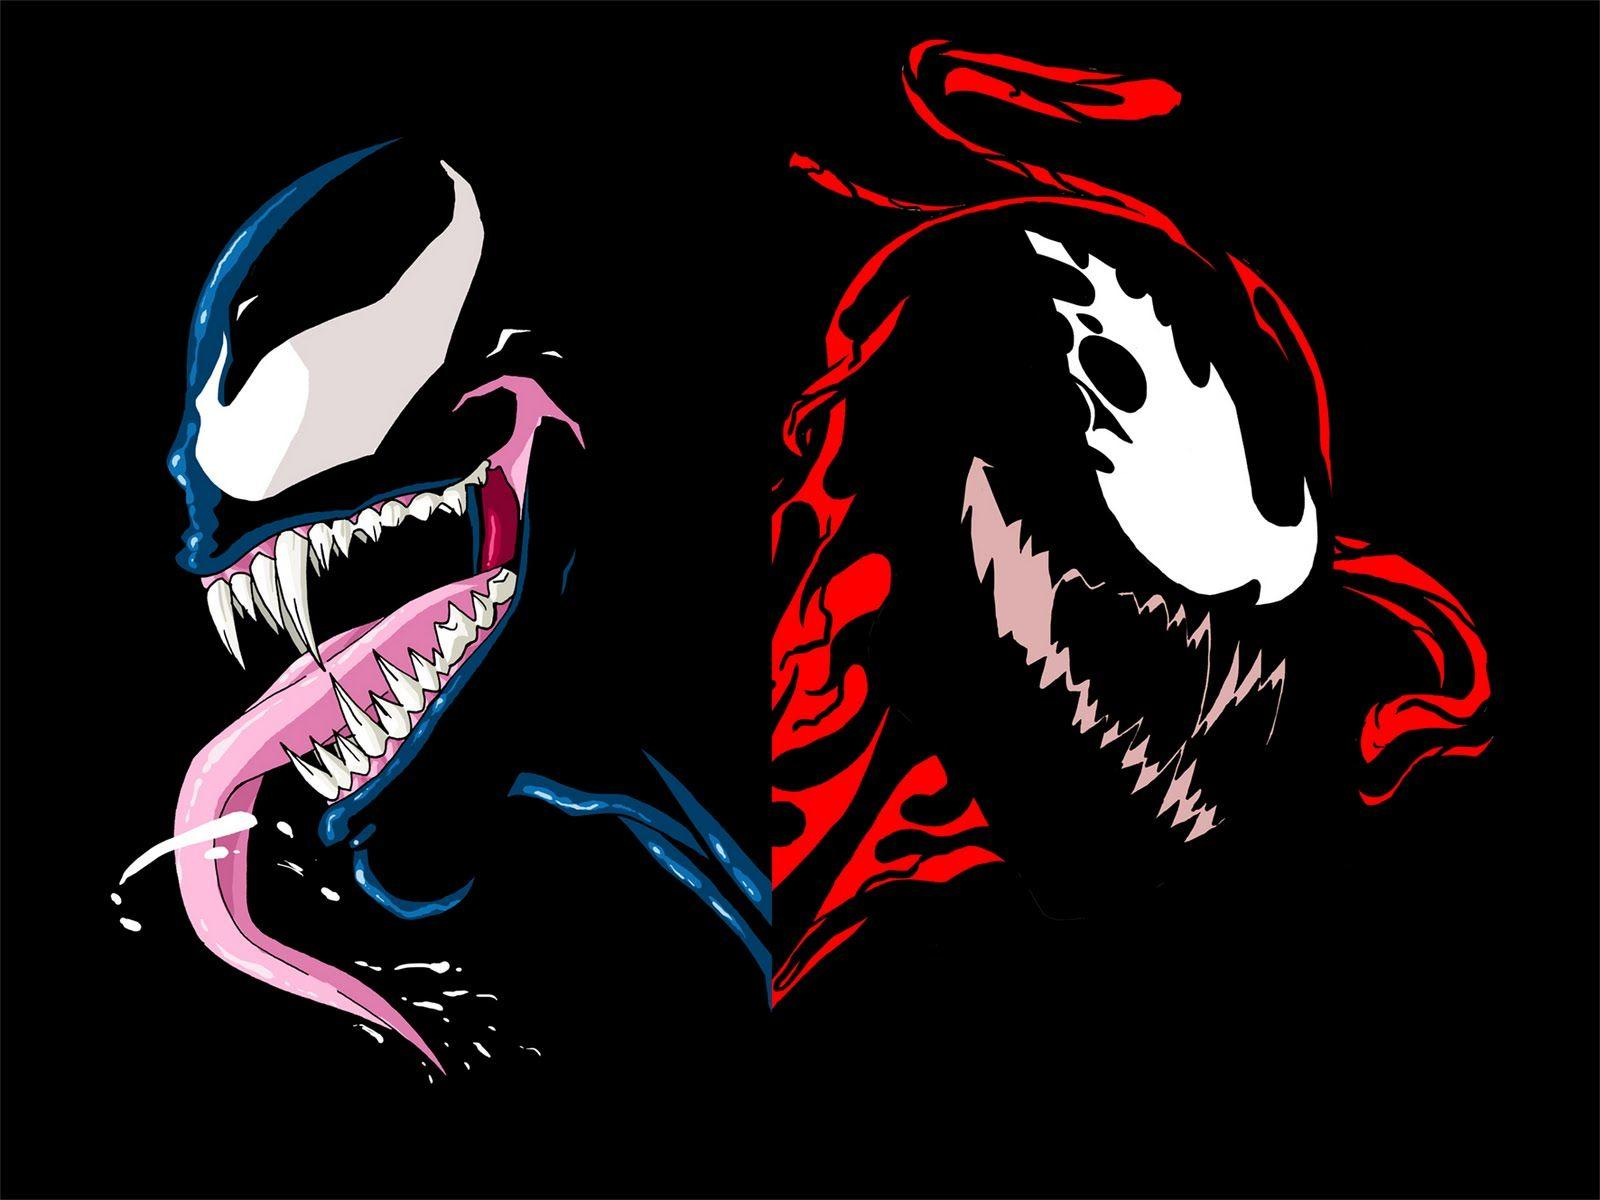 deadpool venom, venom wallpaper 4k